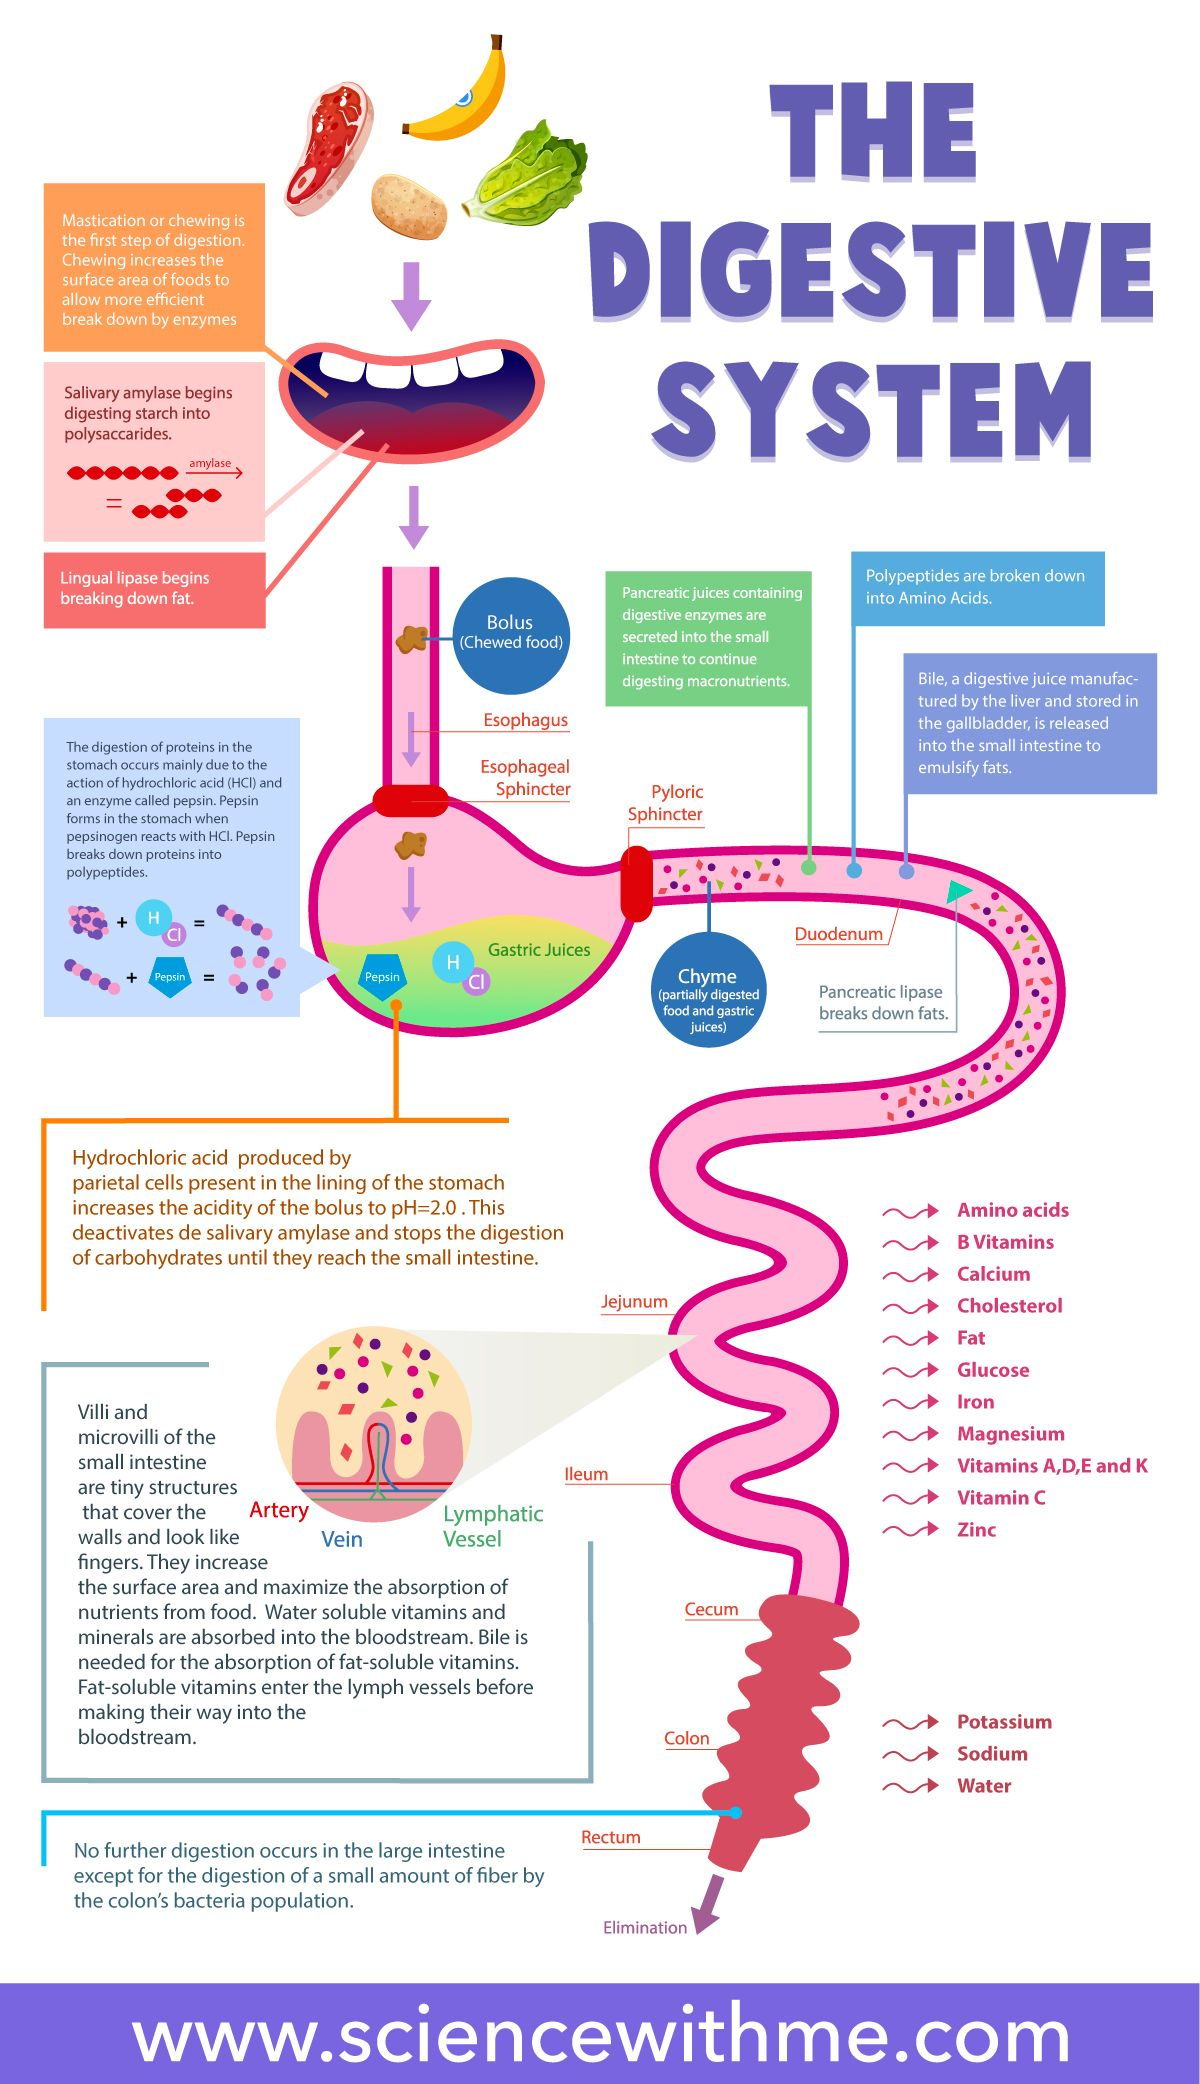 The Digestive System Is A Group Of Organs Working Together